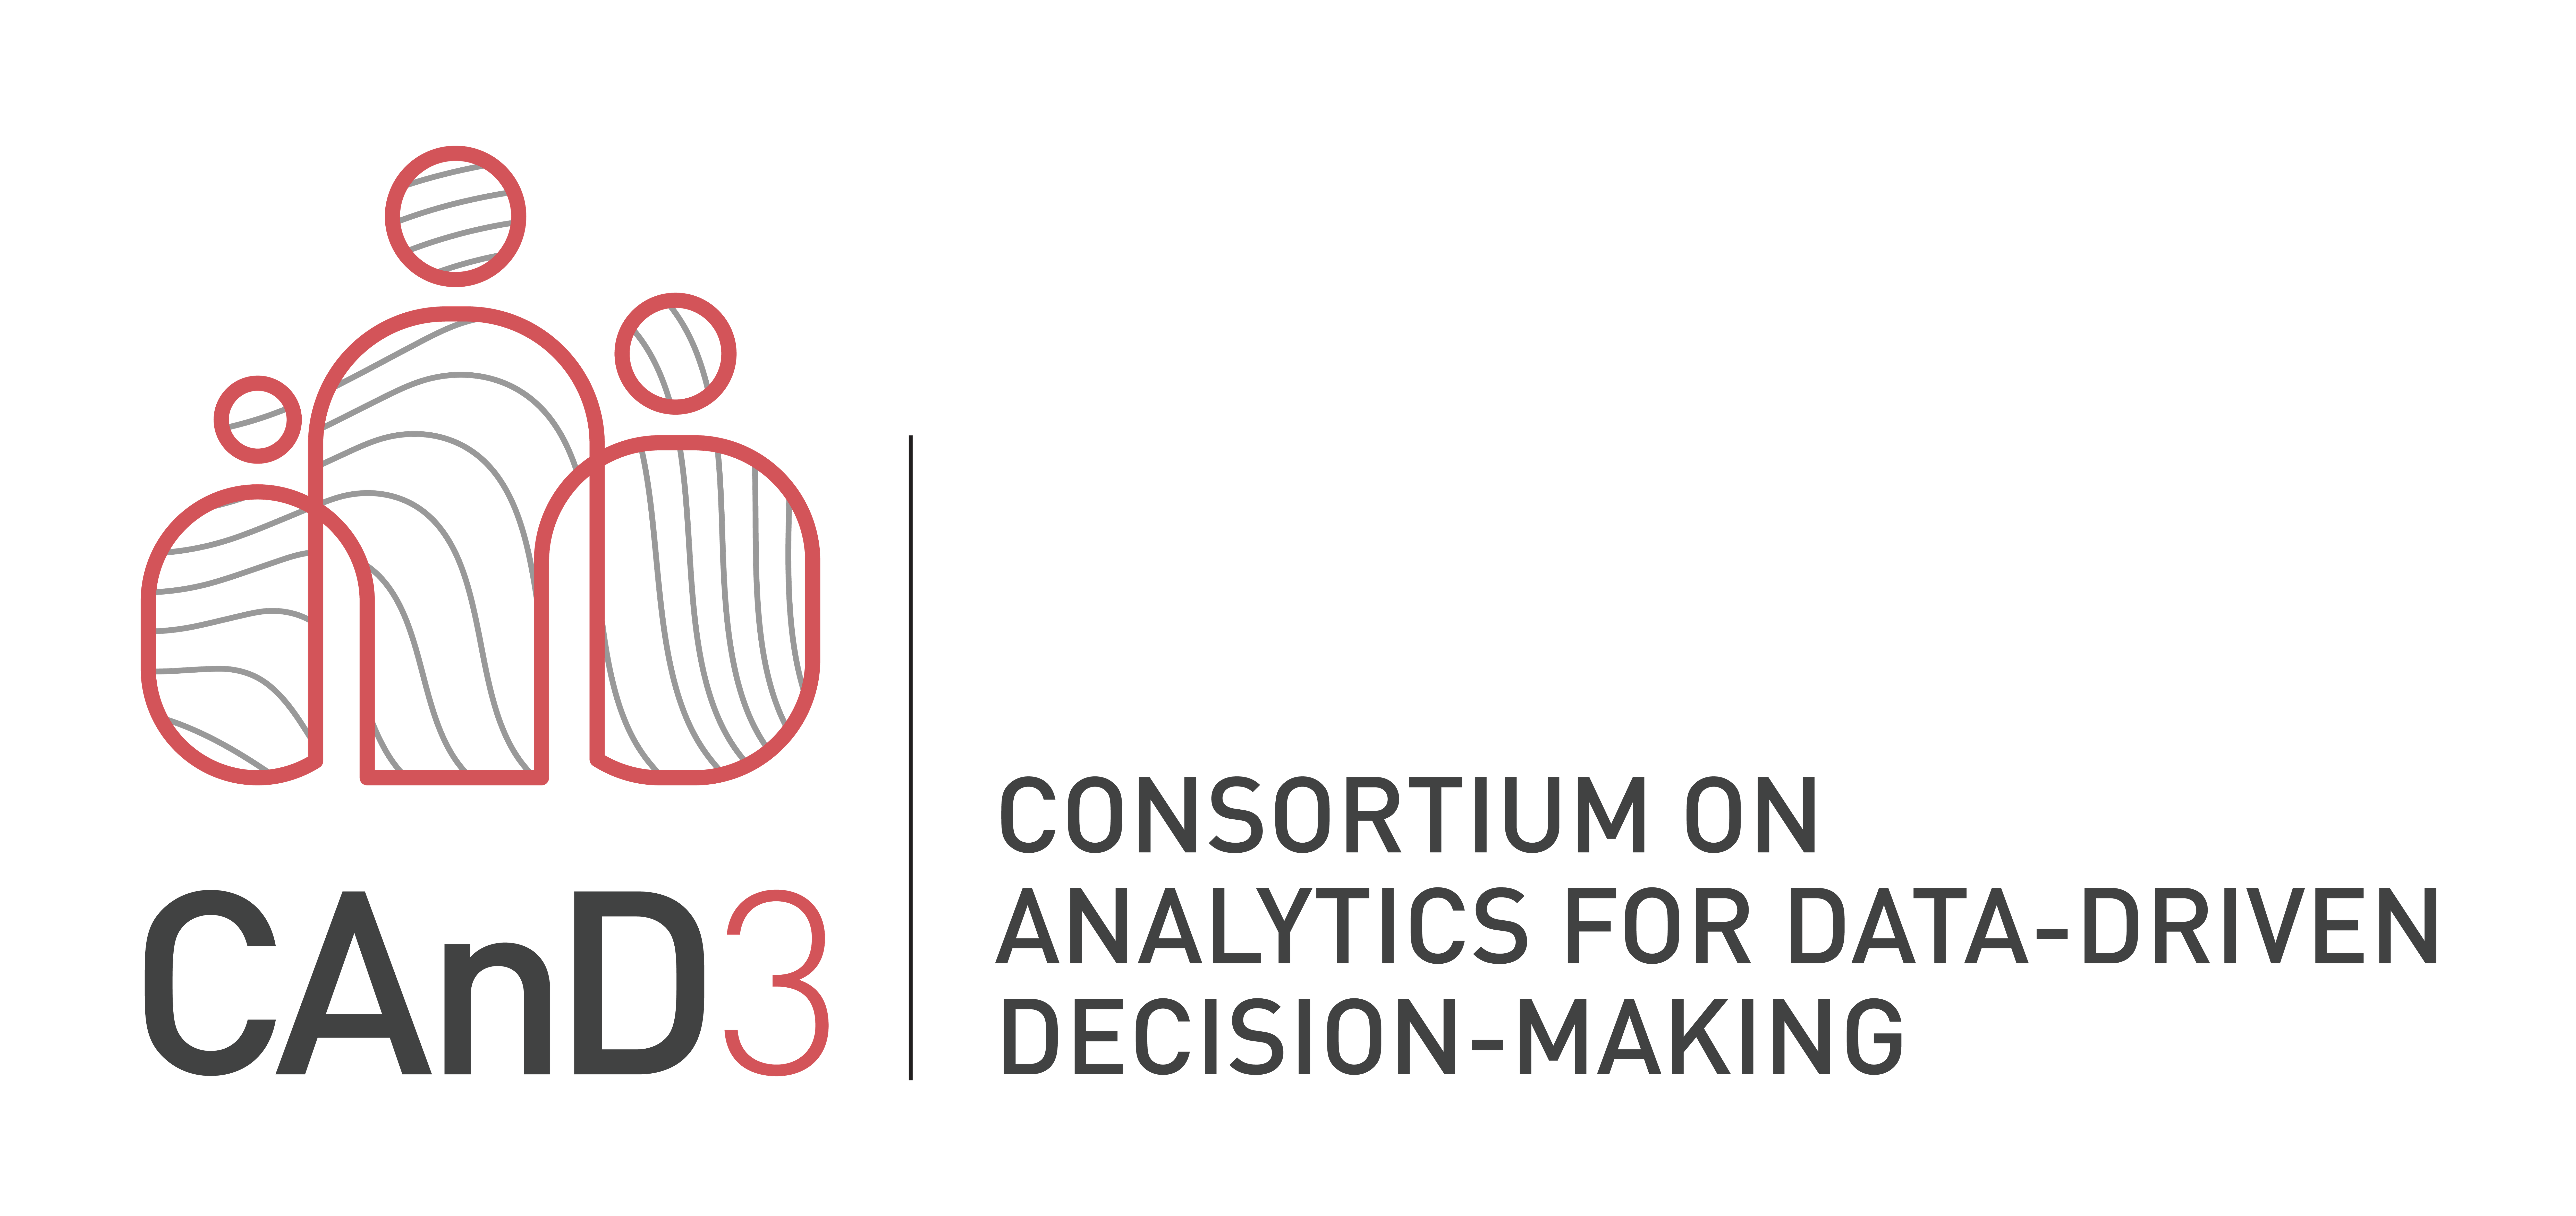 Consortium on Analytics for Data-Driven Decision-Making (CAnD3)